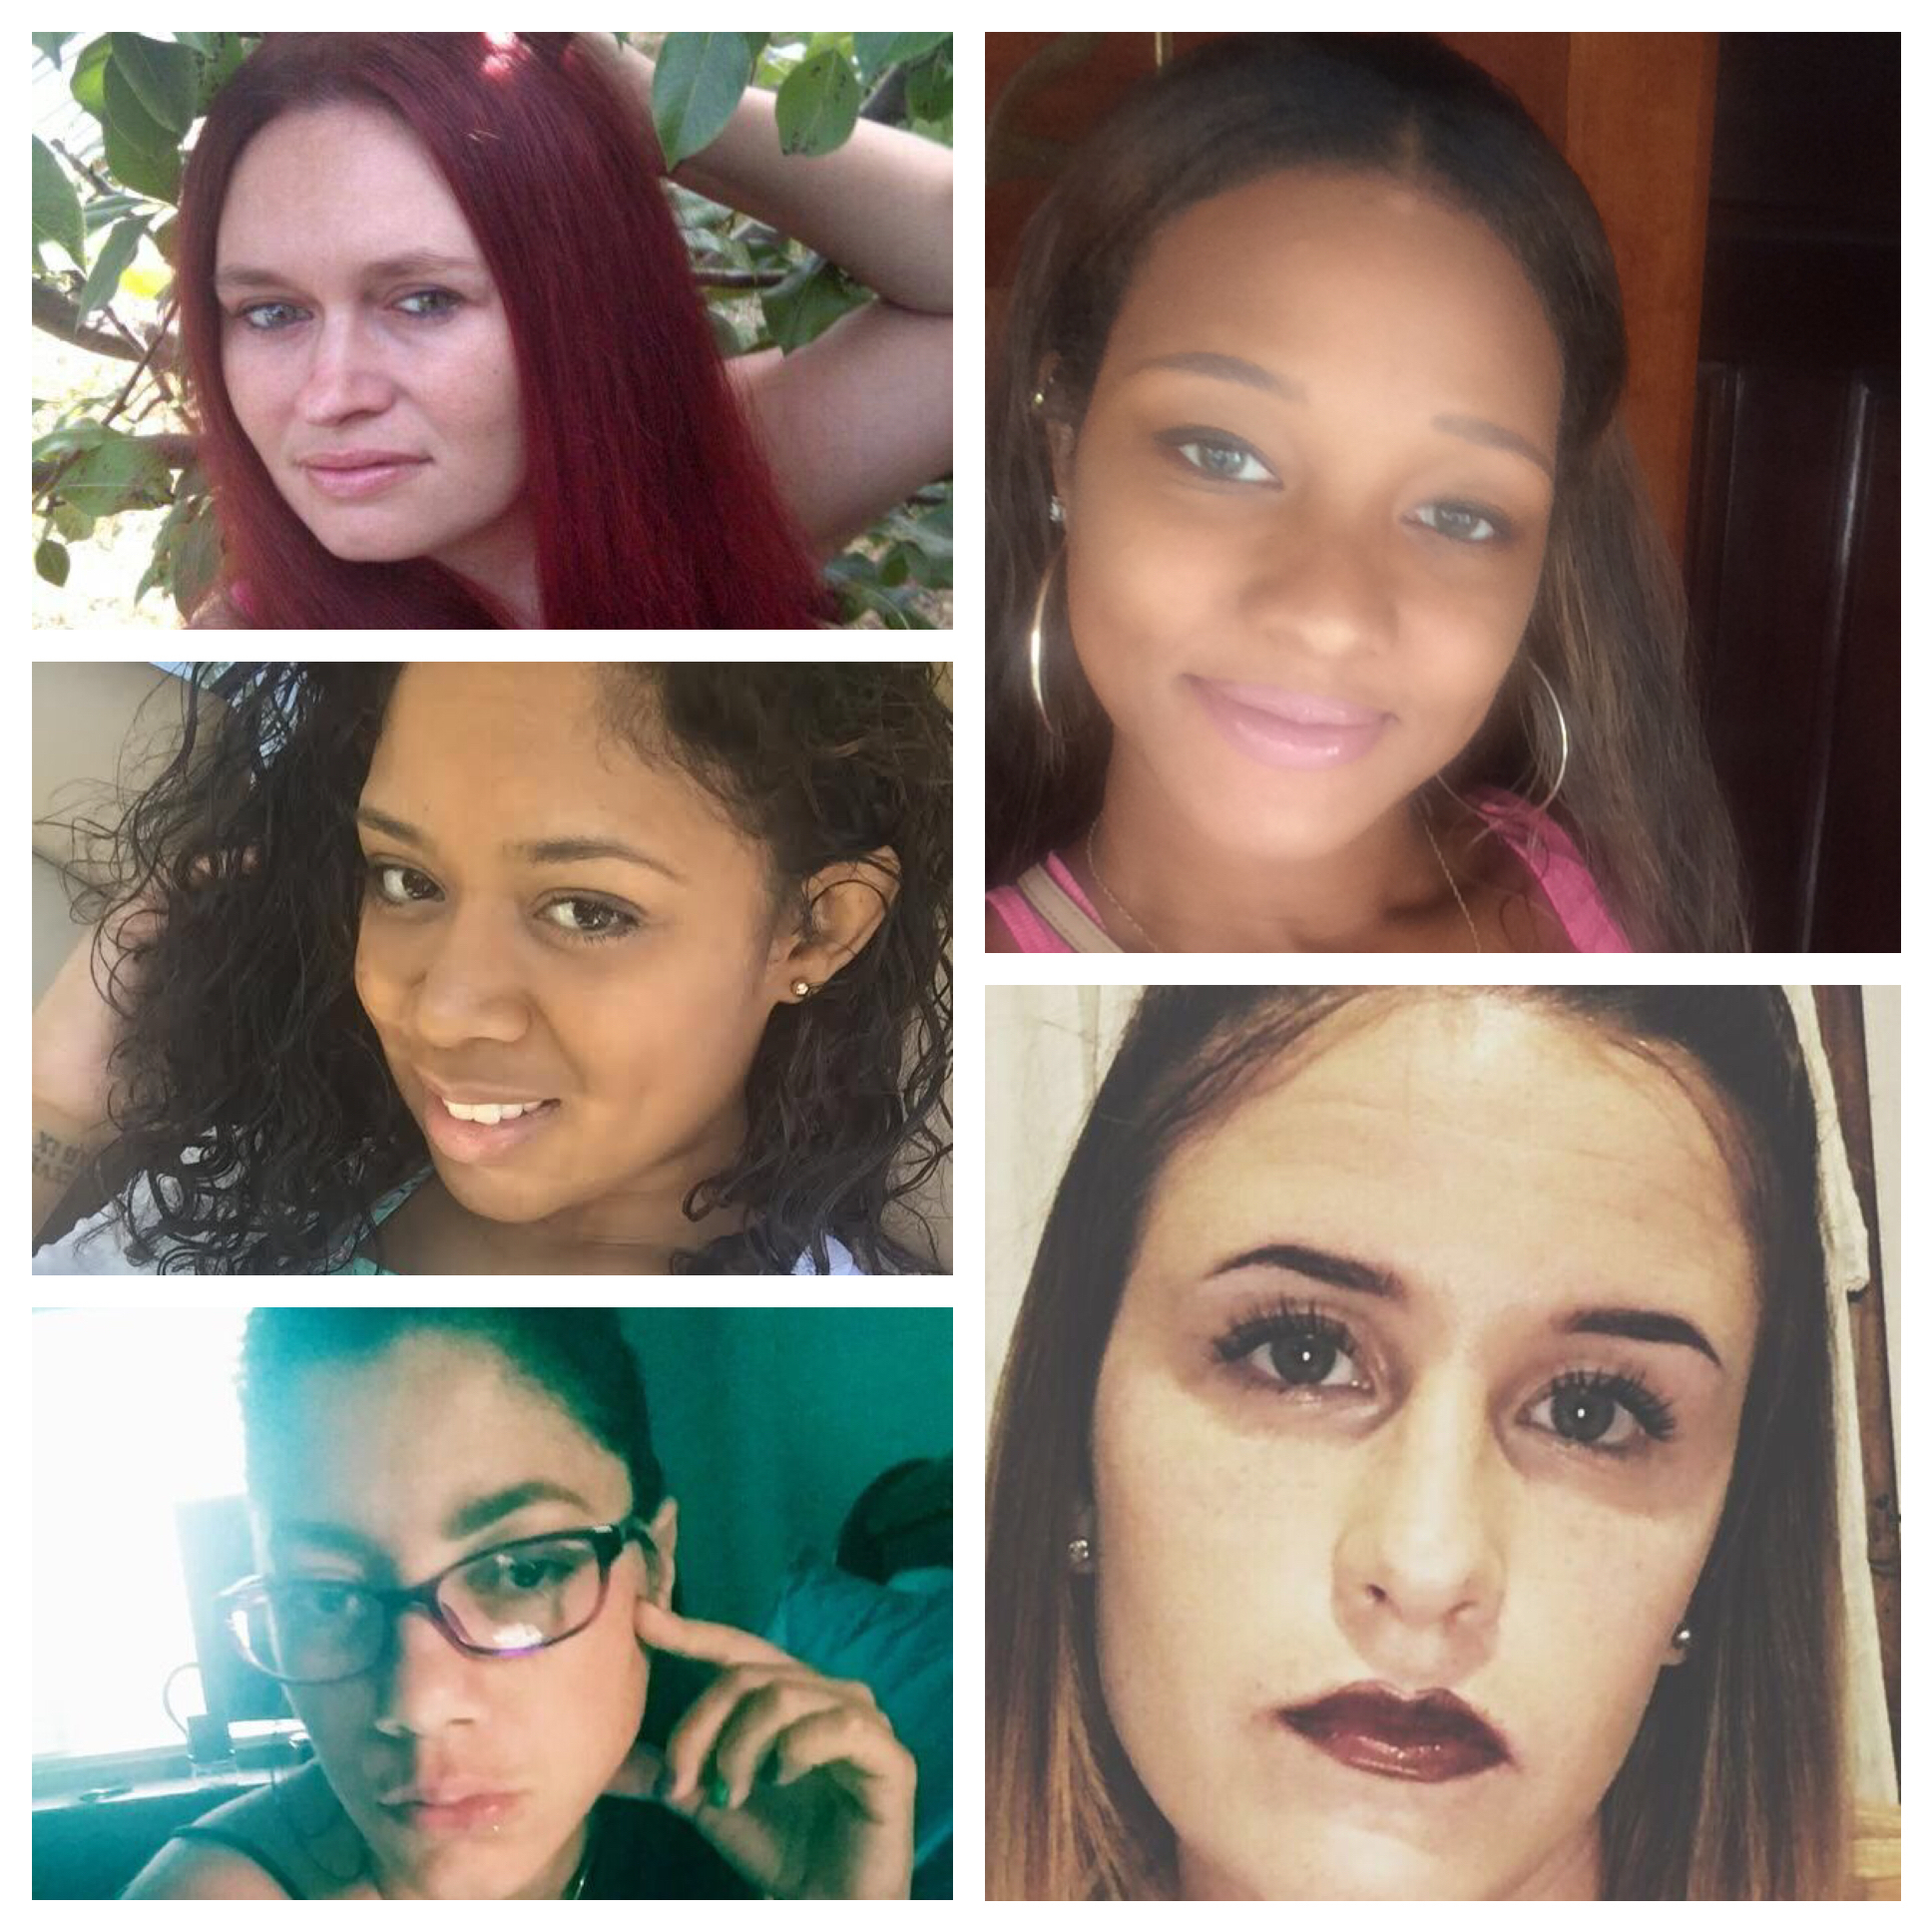 # # #